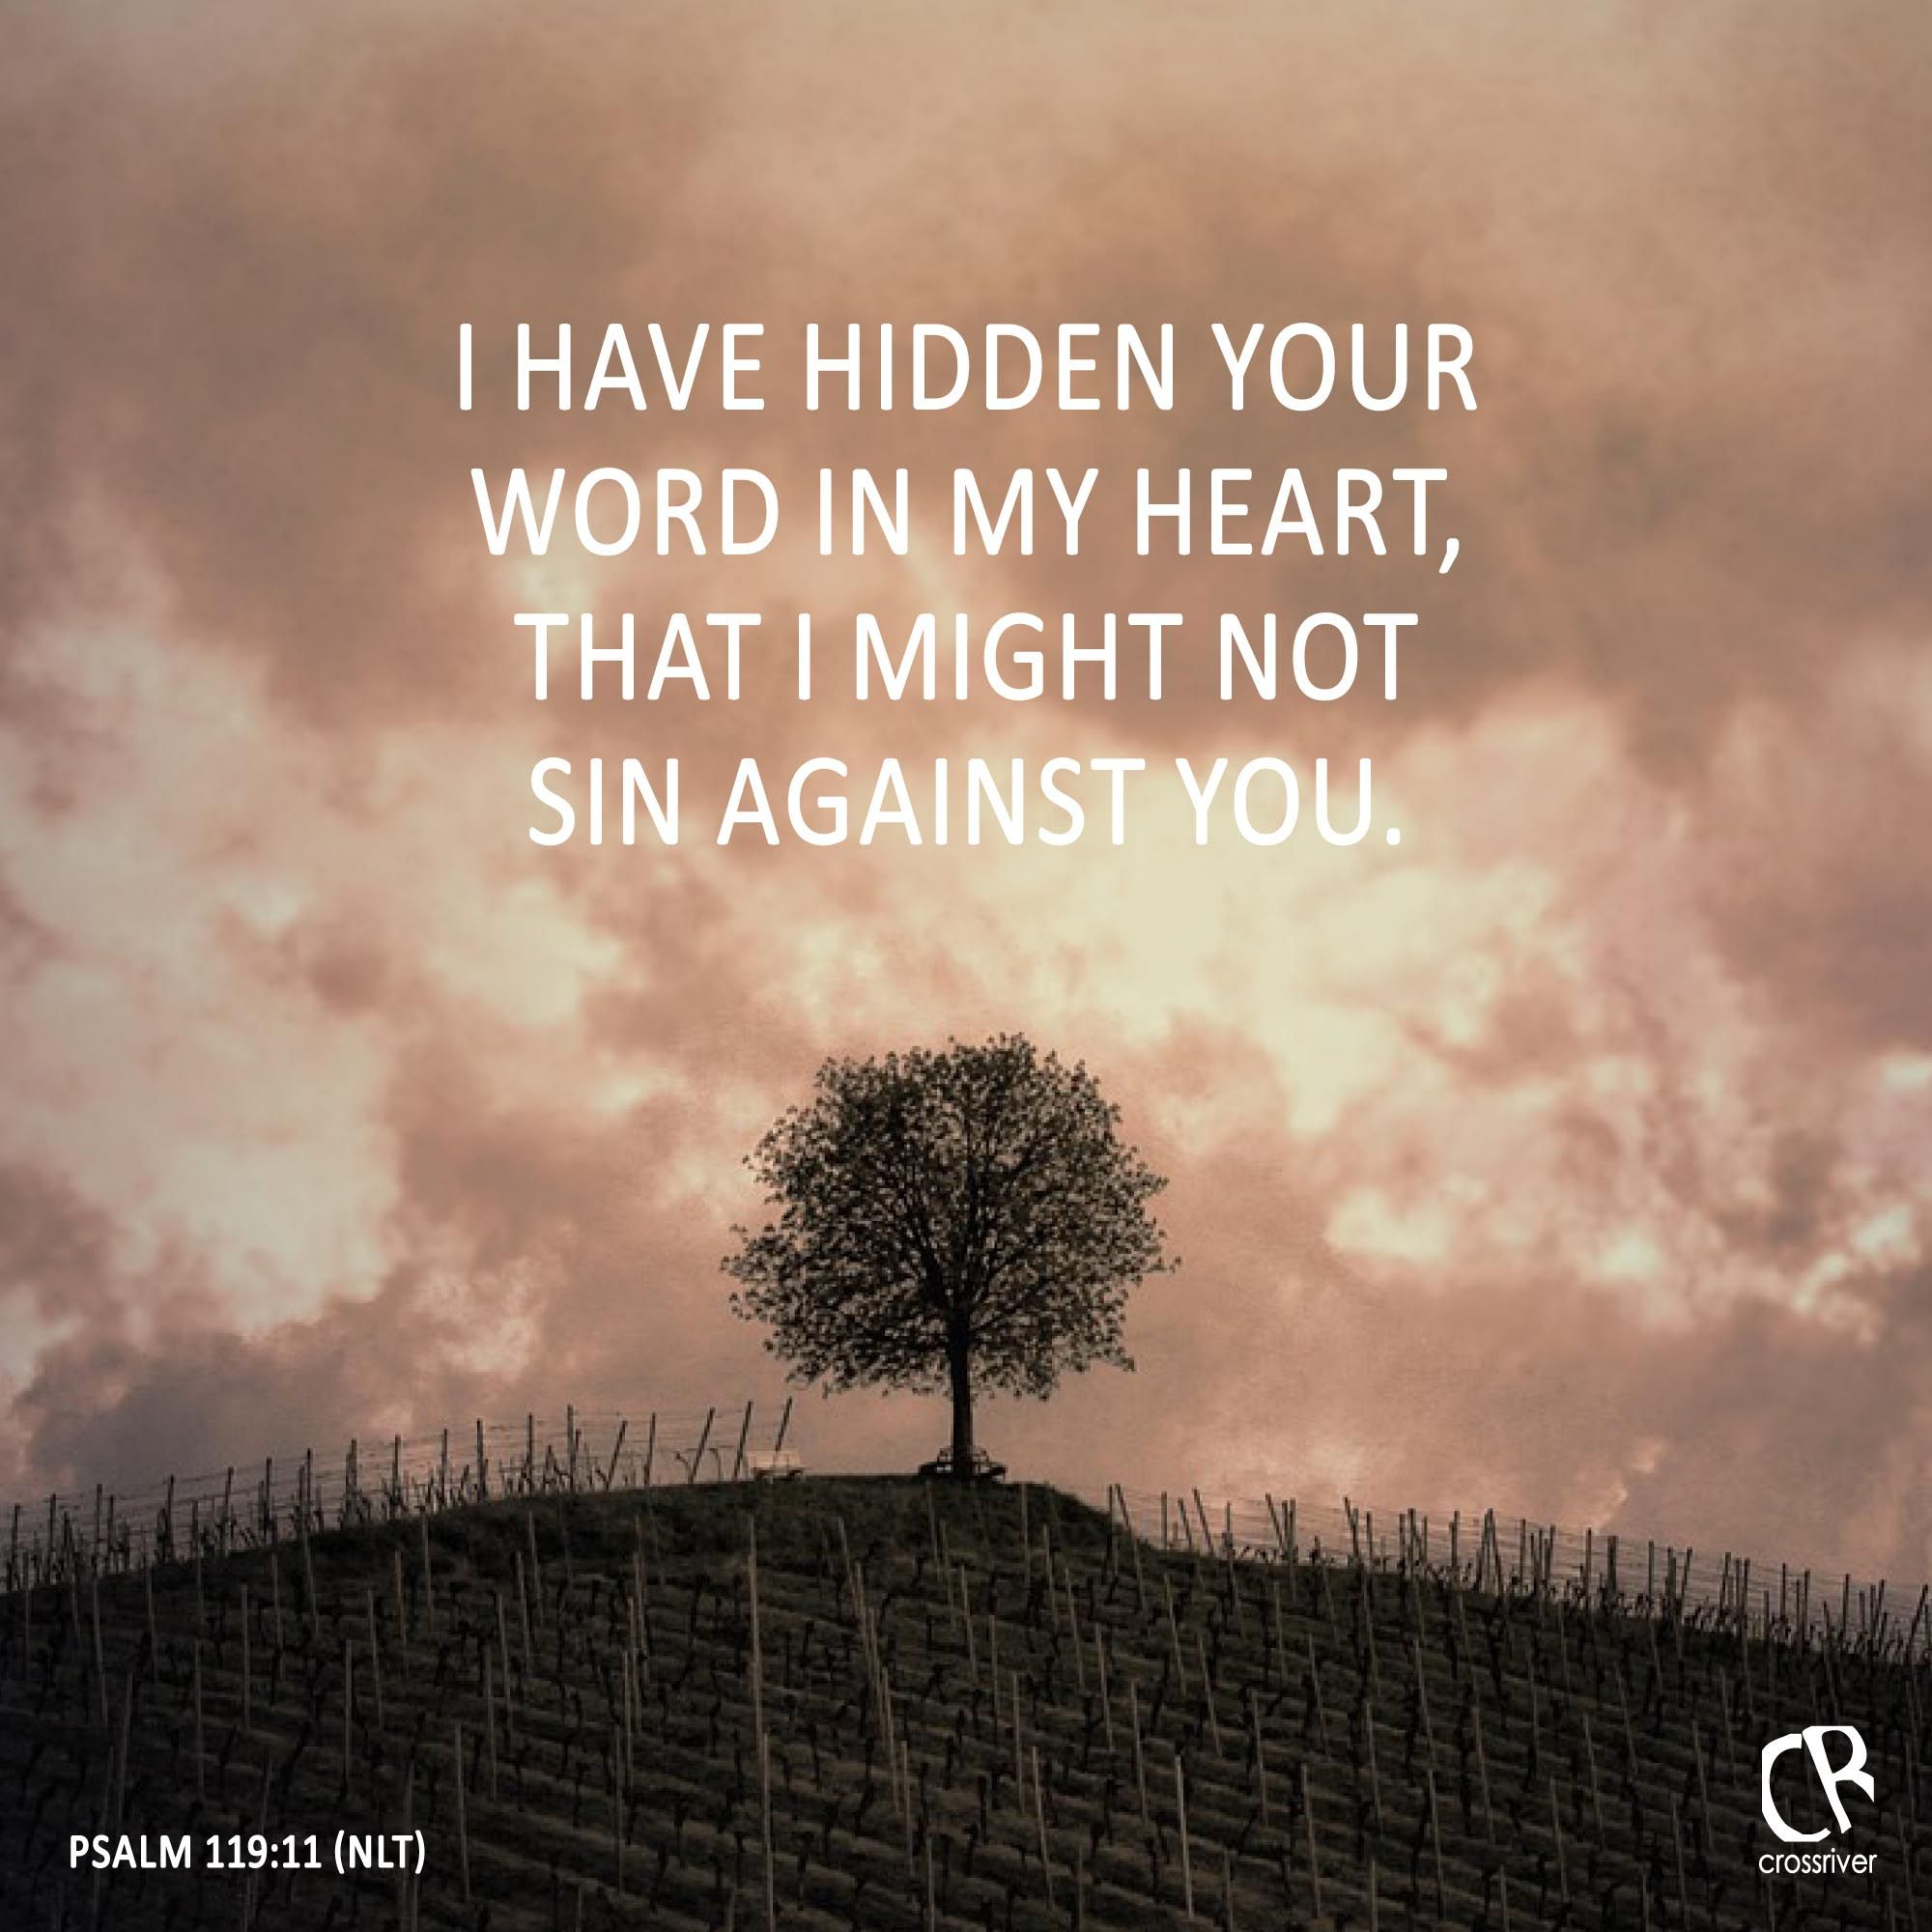 I have hidden your word in my heart, that I might not sin against